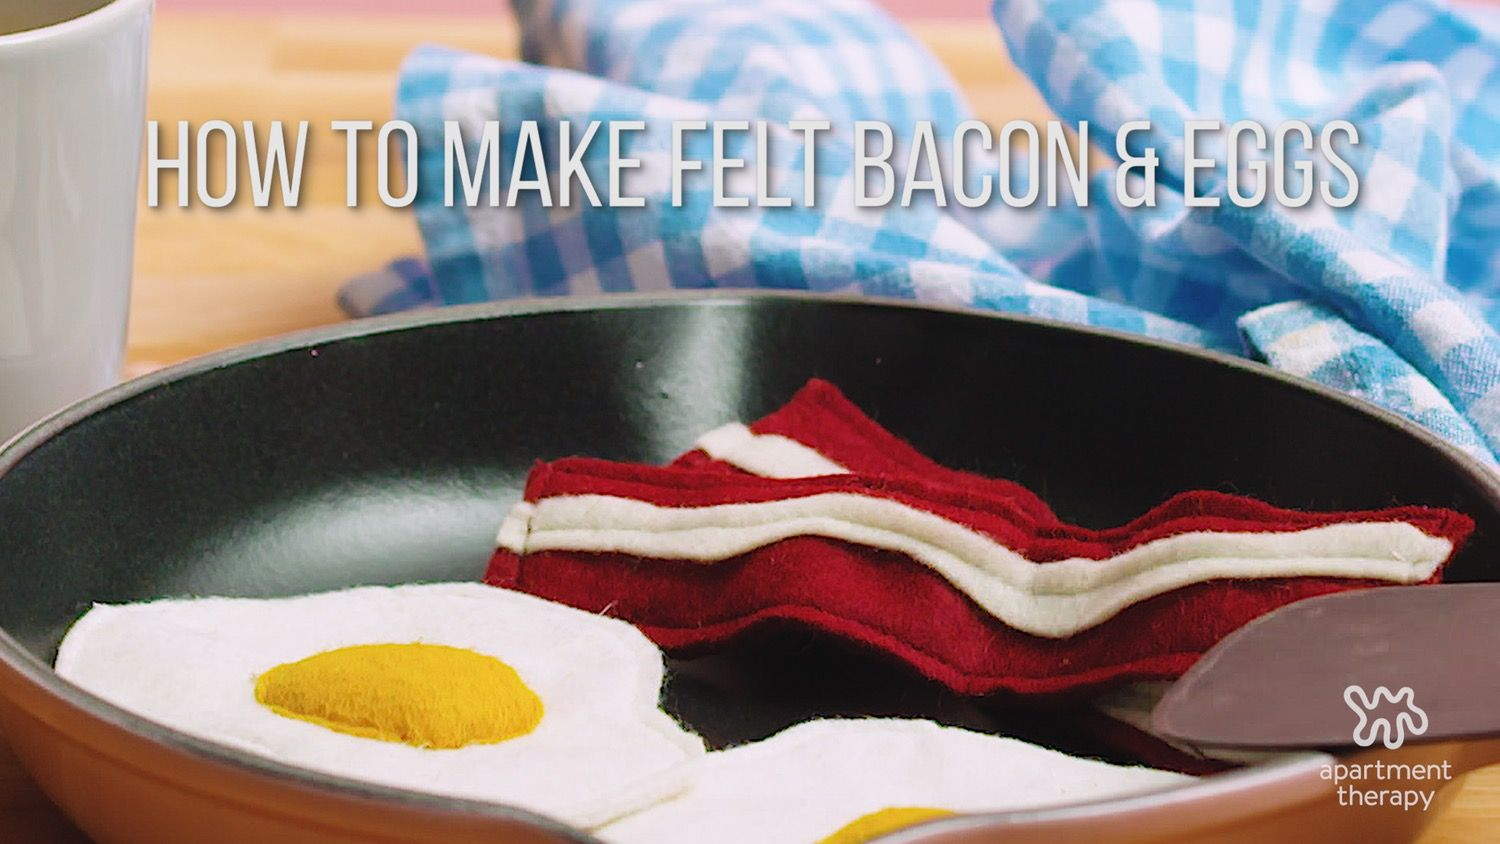 Order Up! Bacon & Eggs Are On the Menu With This Crafty Project — Video for Apartment Therapy